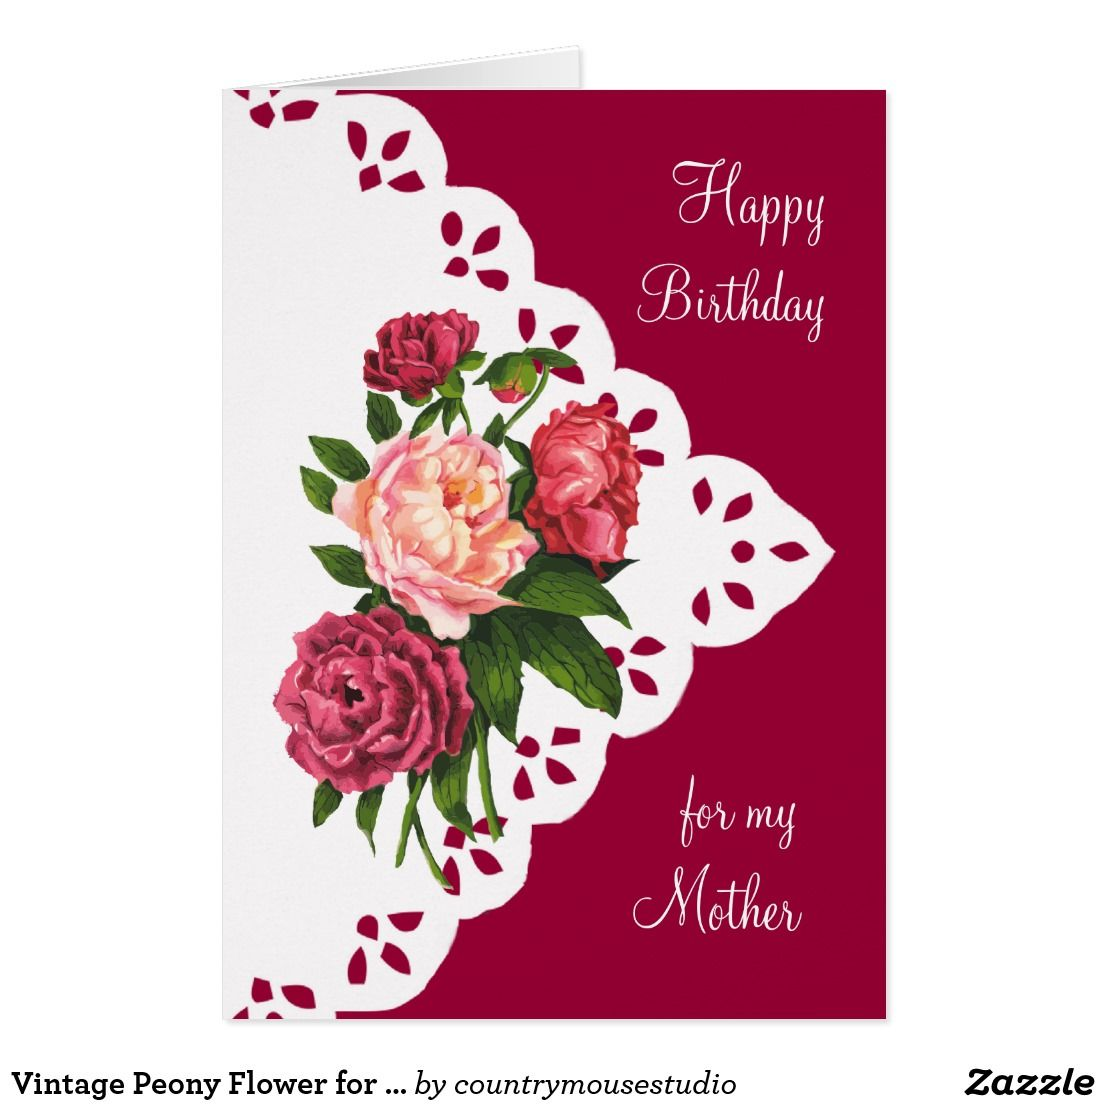 Vintage peony flower for mom mother birthday happy birthday 80 shop vintage peony flower for mom mother birthday card created by countrymousestudio izmirmasajfo